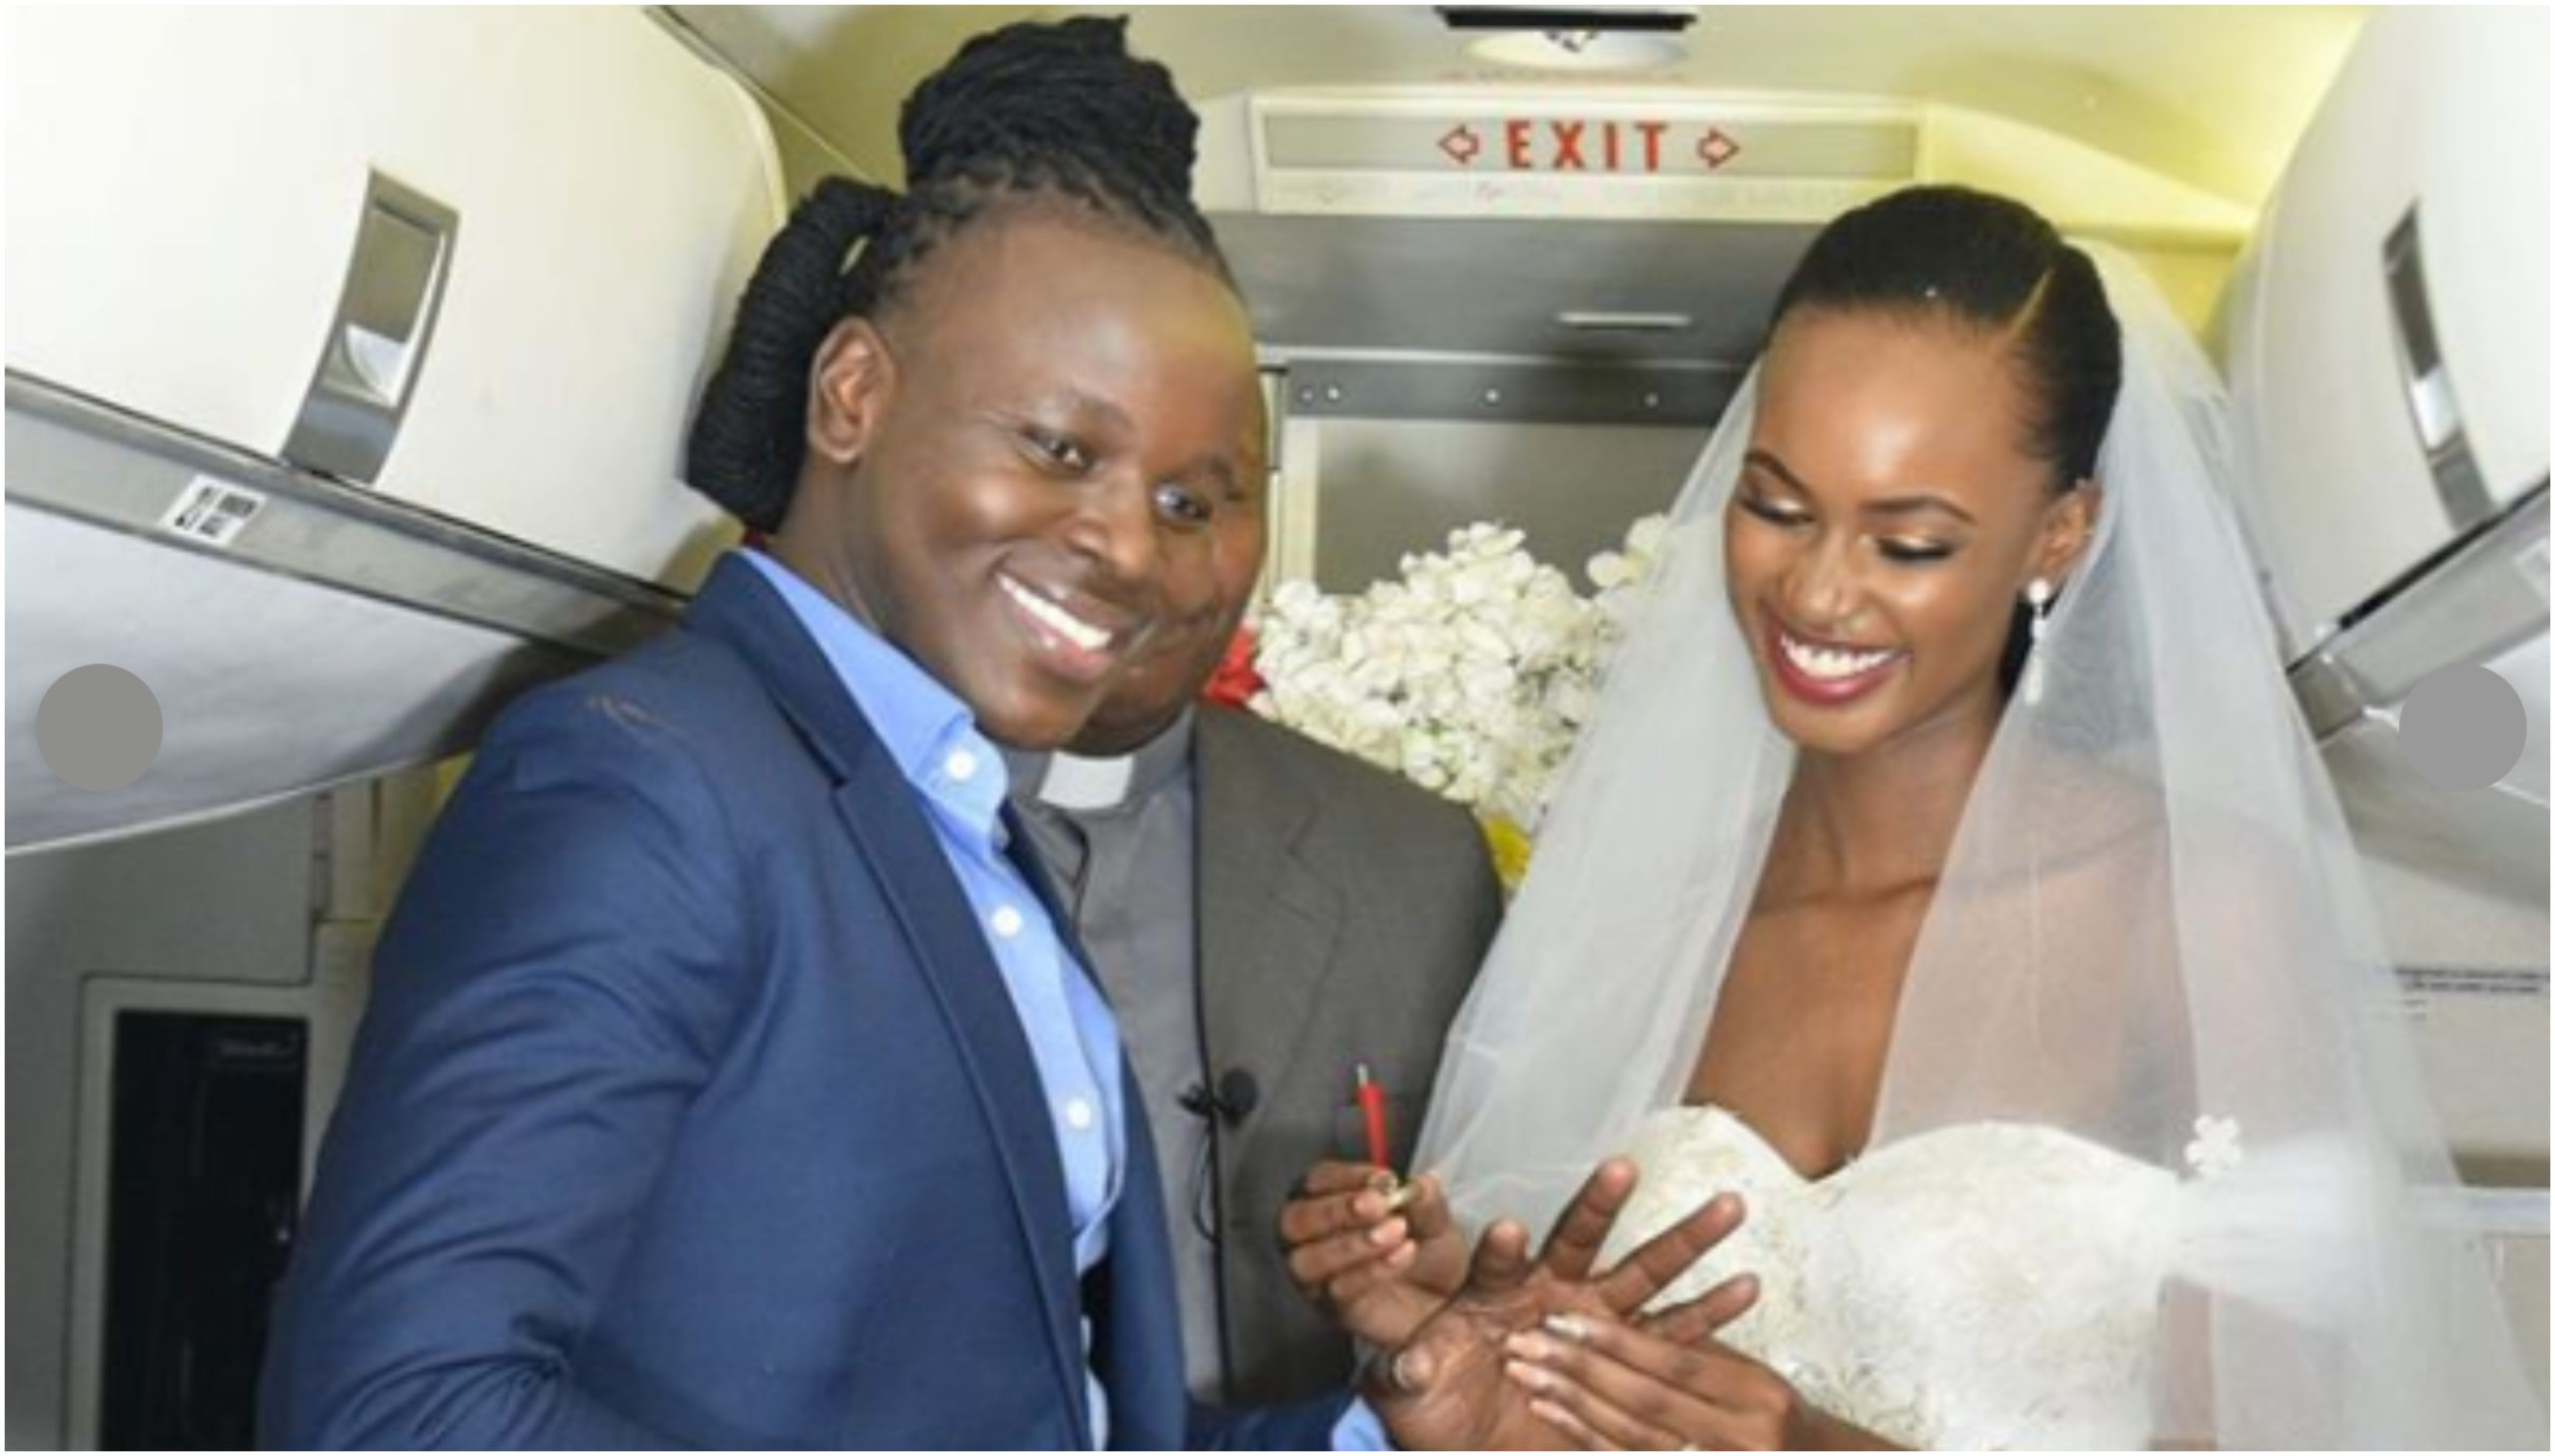 Ujaluo ni gharama! Meet Kenyan man who broke the bank to wed lover inside a plane (Photos)